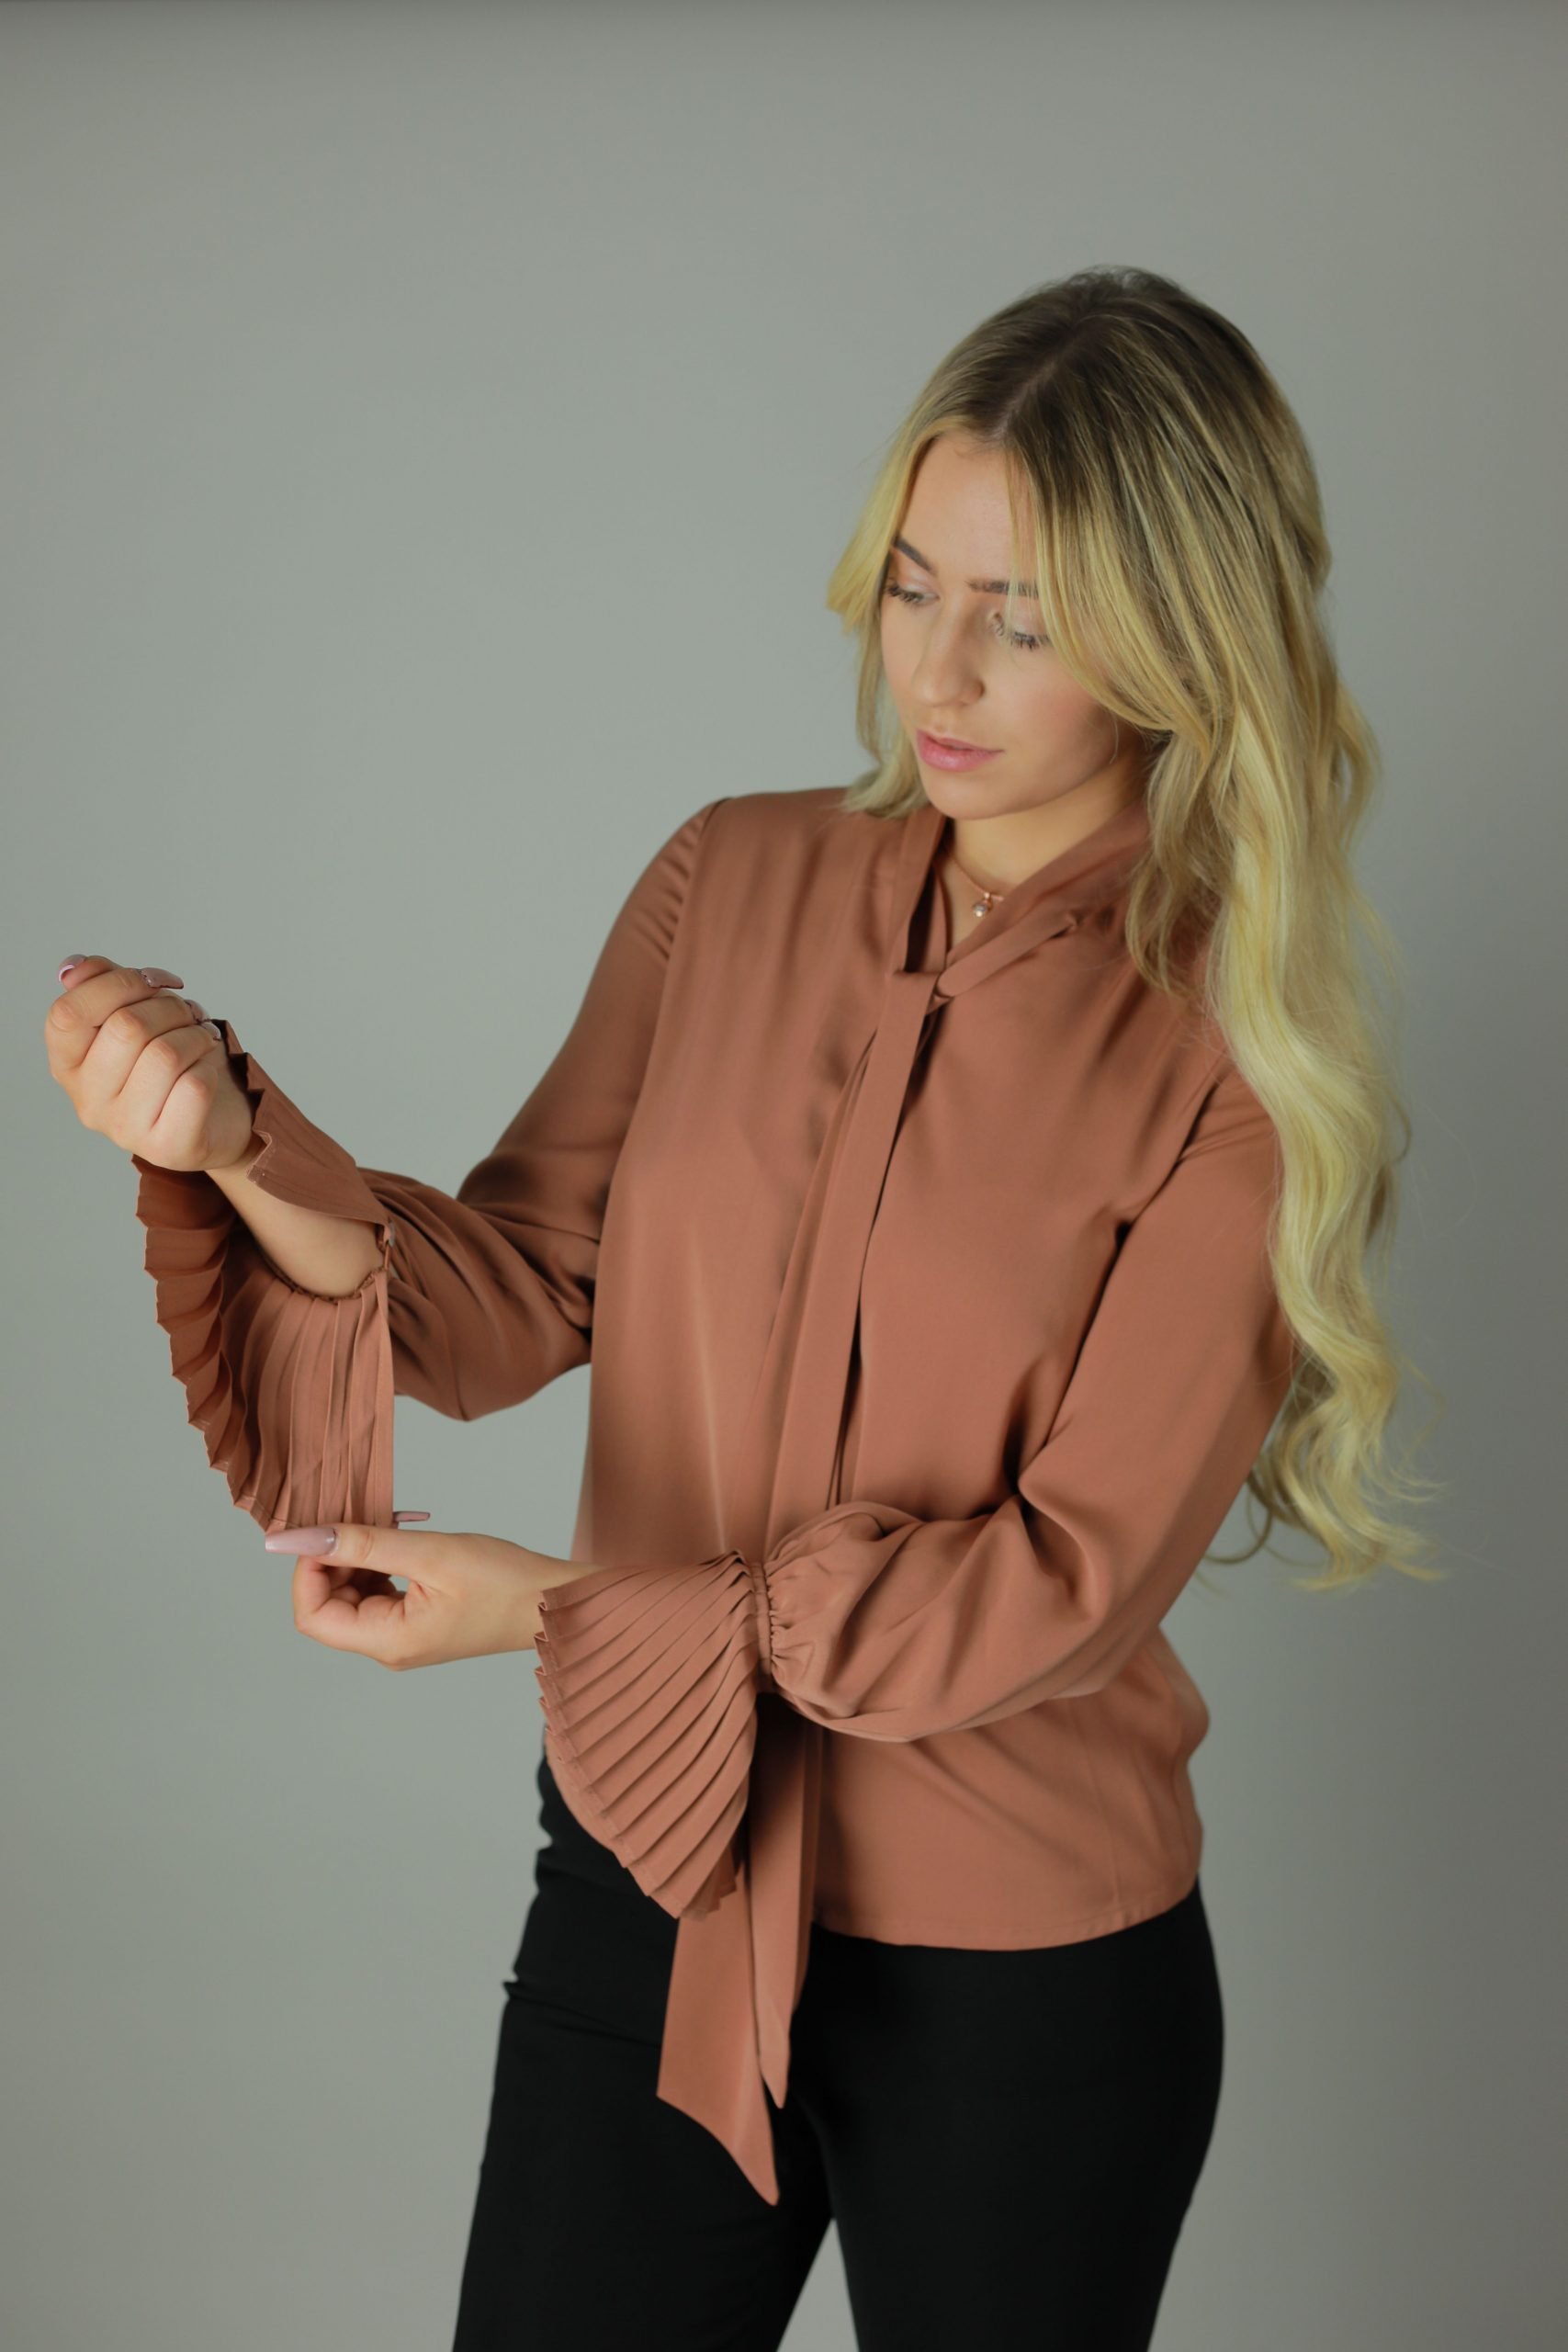 The Ruffle Cuff Blouse is the perfect mix of contemporory and Victorian style to compliment any outfit, work, casual or formal this blouse is timeless.